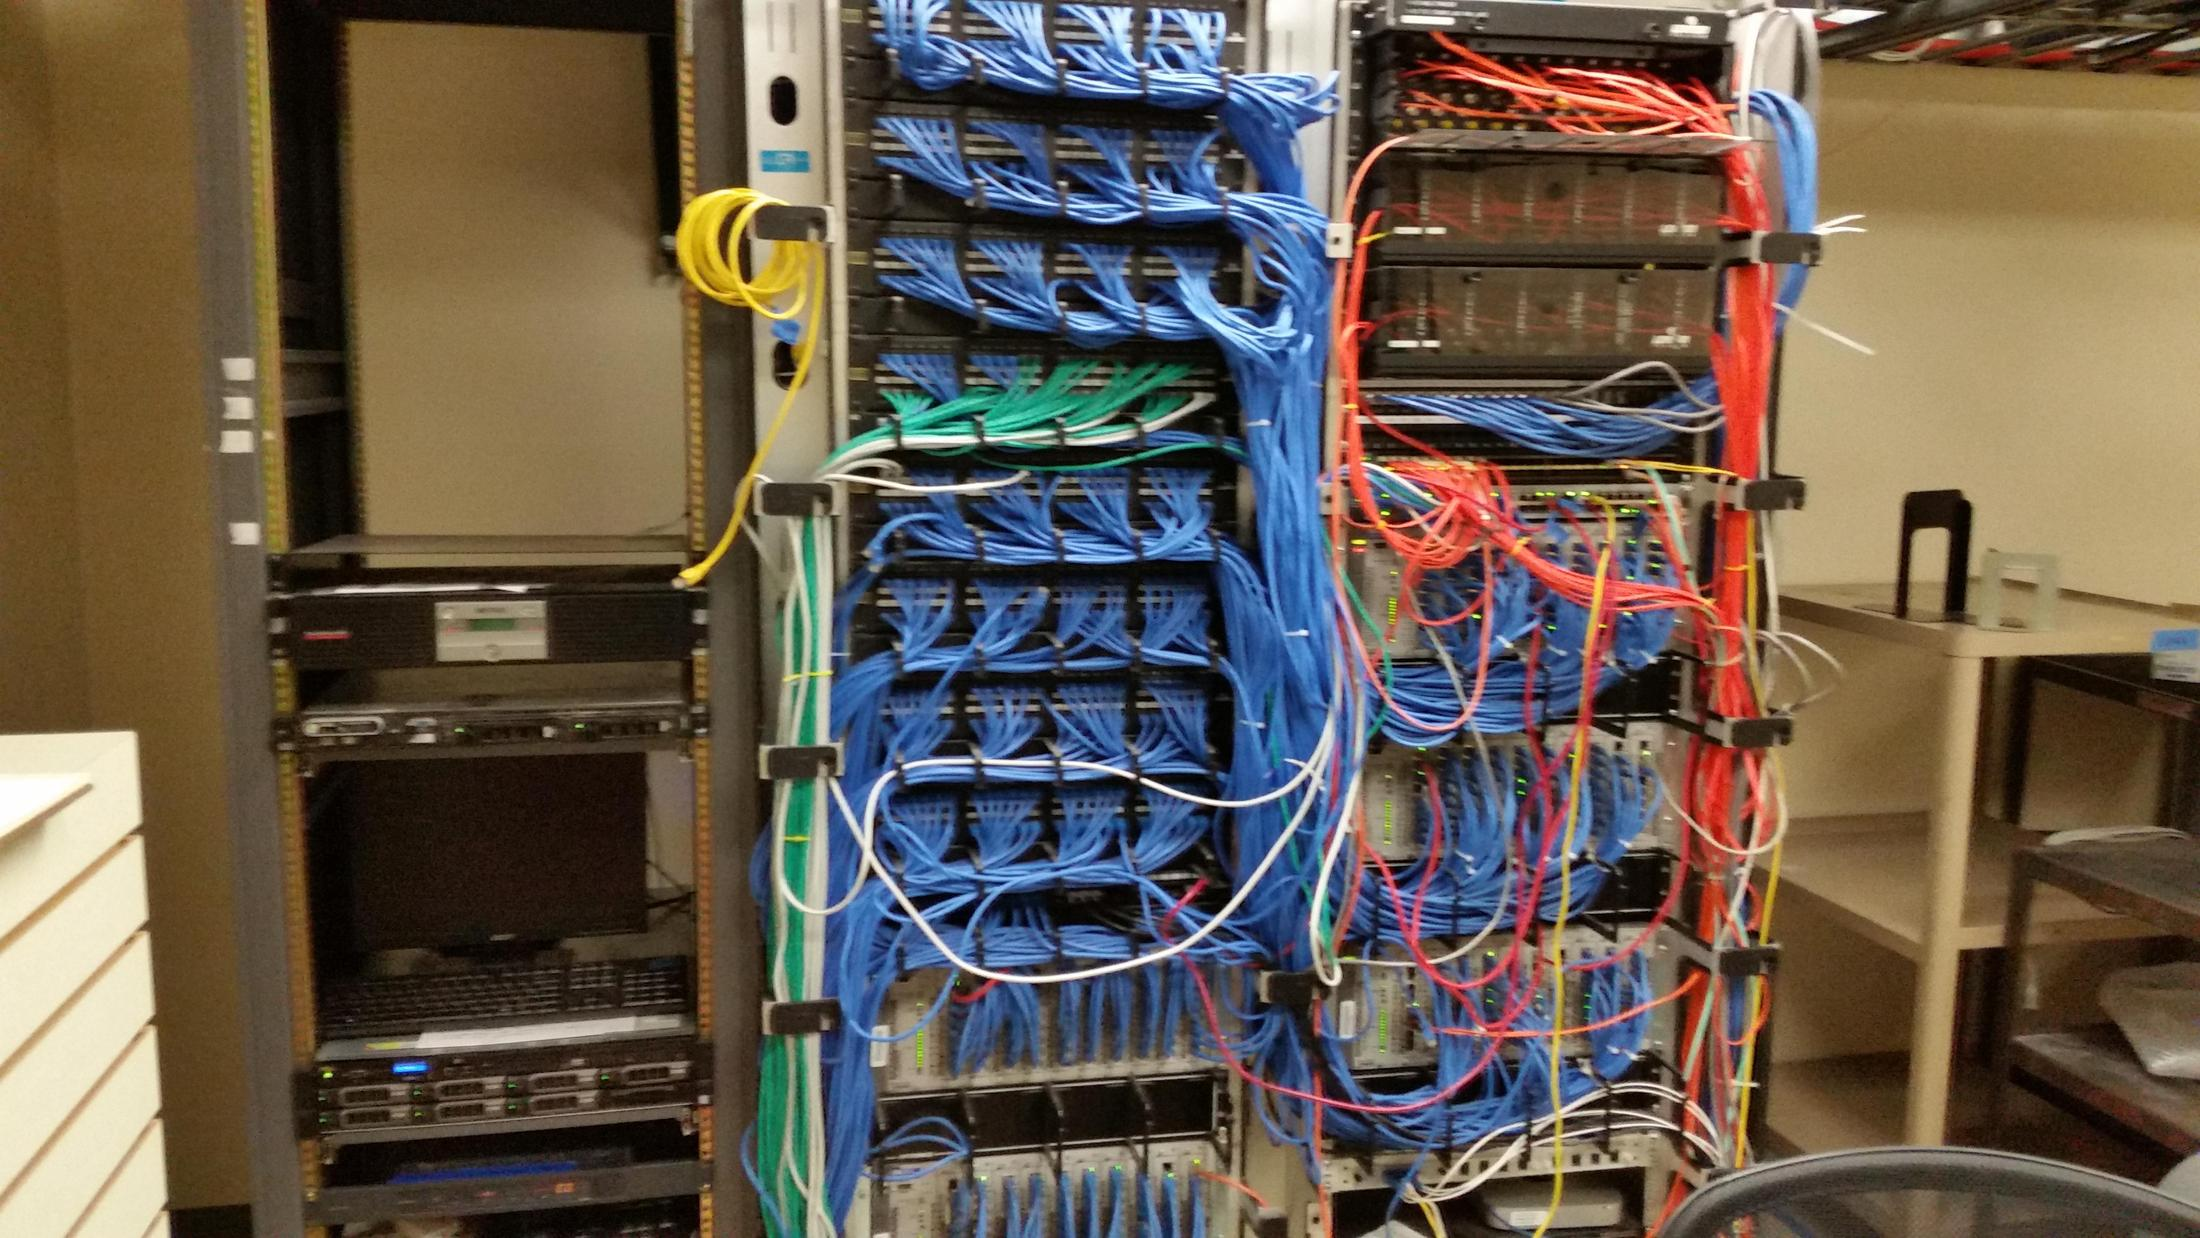 All Sites - Network Infrastructure Upgrade Project